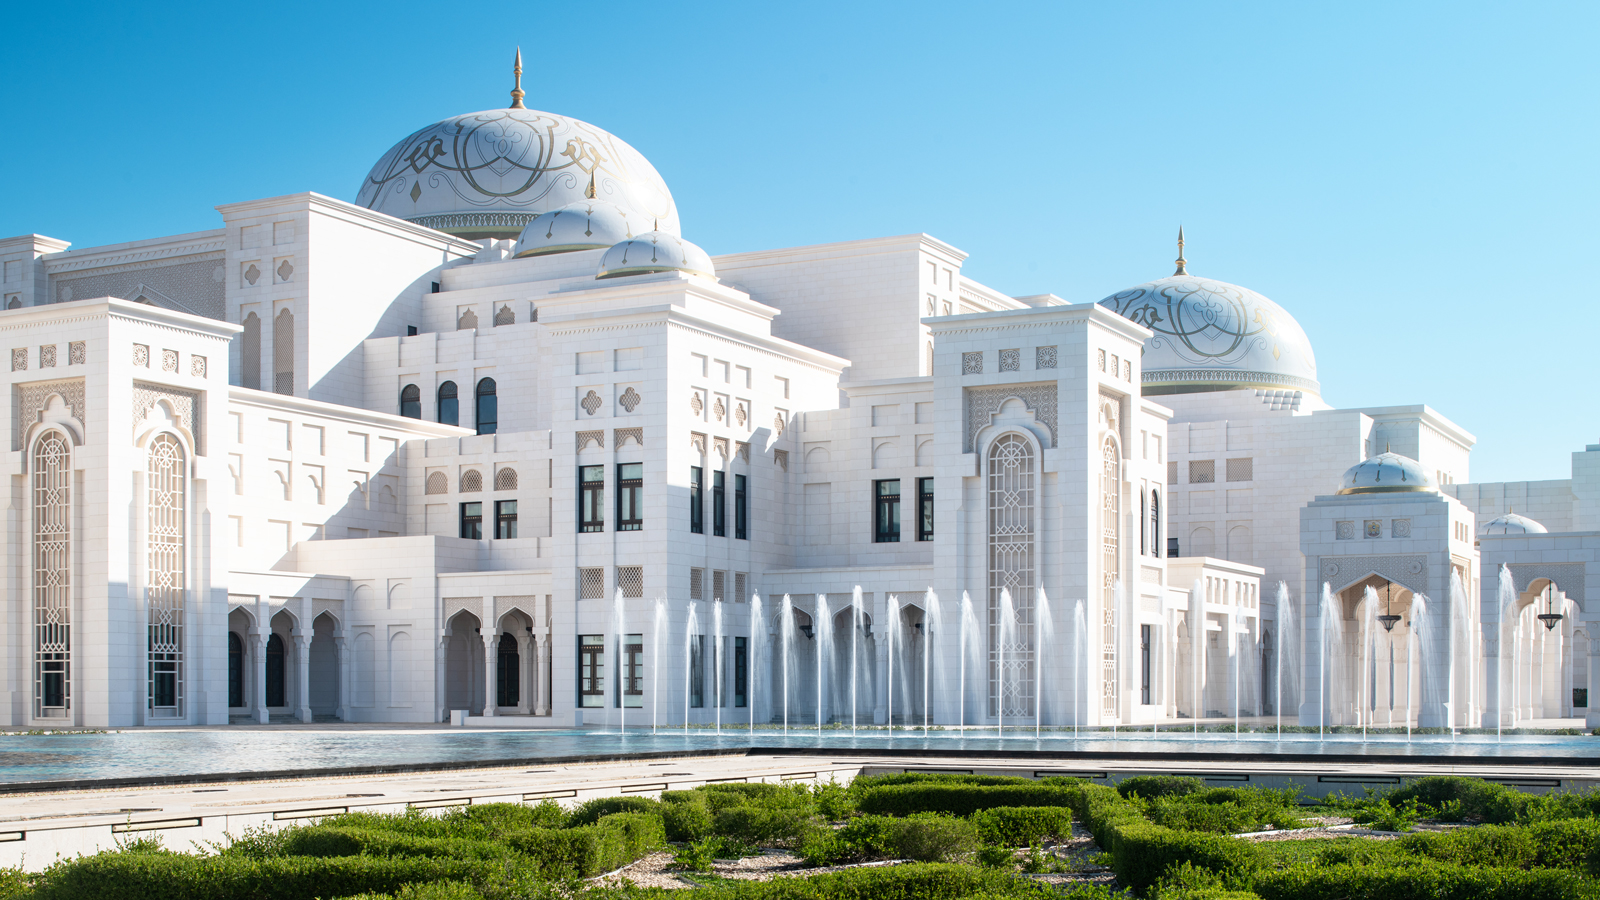 Abu Dhabi's Presidential Palace is now open to visitors